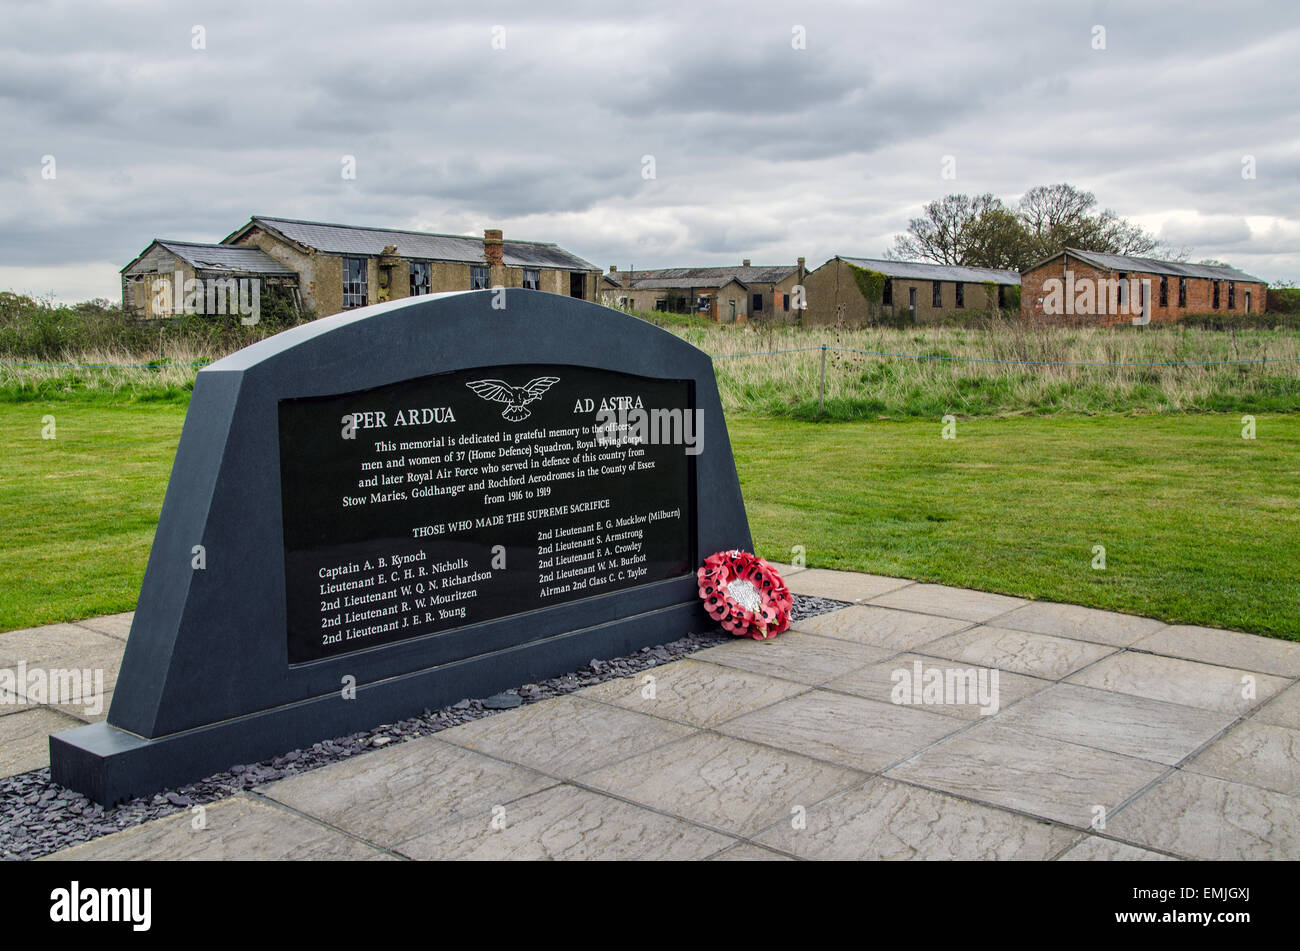 Stow Maries Aerodrome was built in 1916 to defend the approach to London, the RAF left in 1919 and the site has - Stock Image